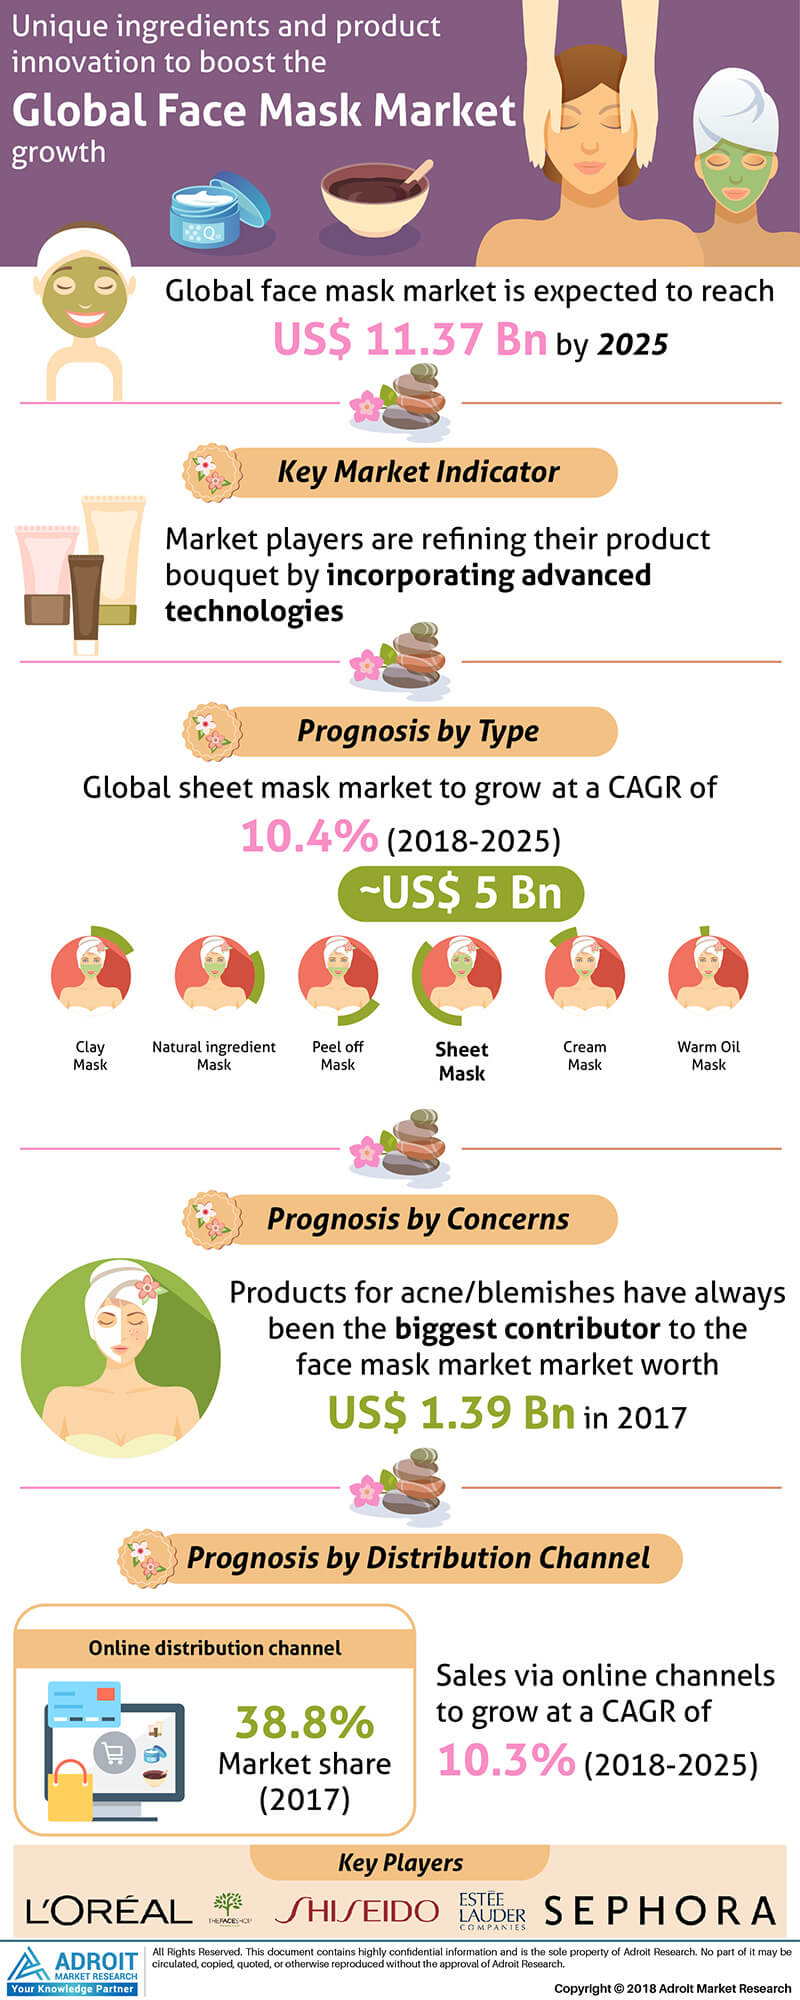 Global Face Masks Market Size 2017 by Type, Application, Region, and Forecast 2018 to 2025